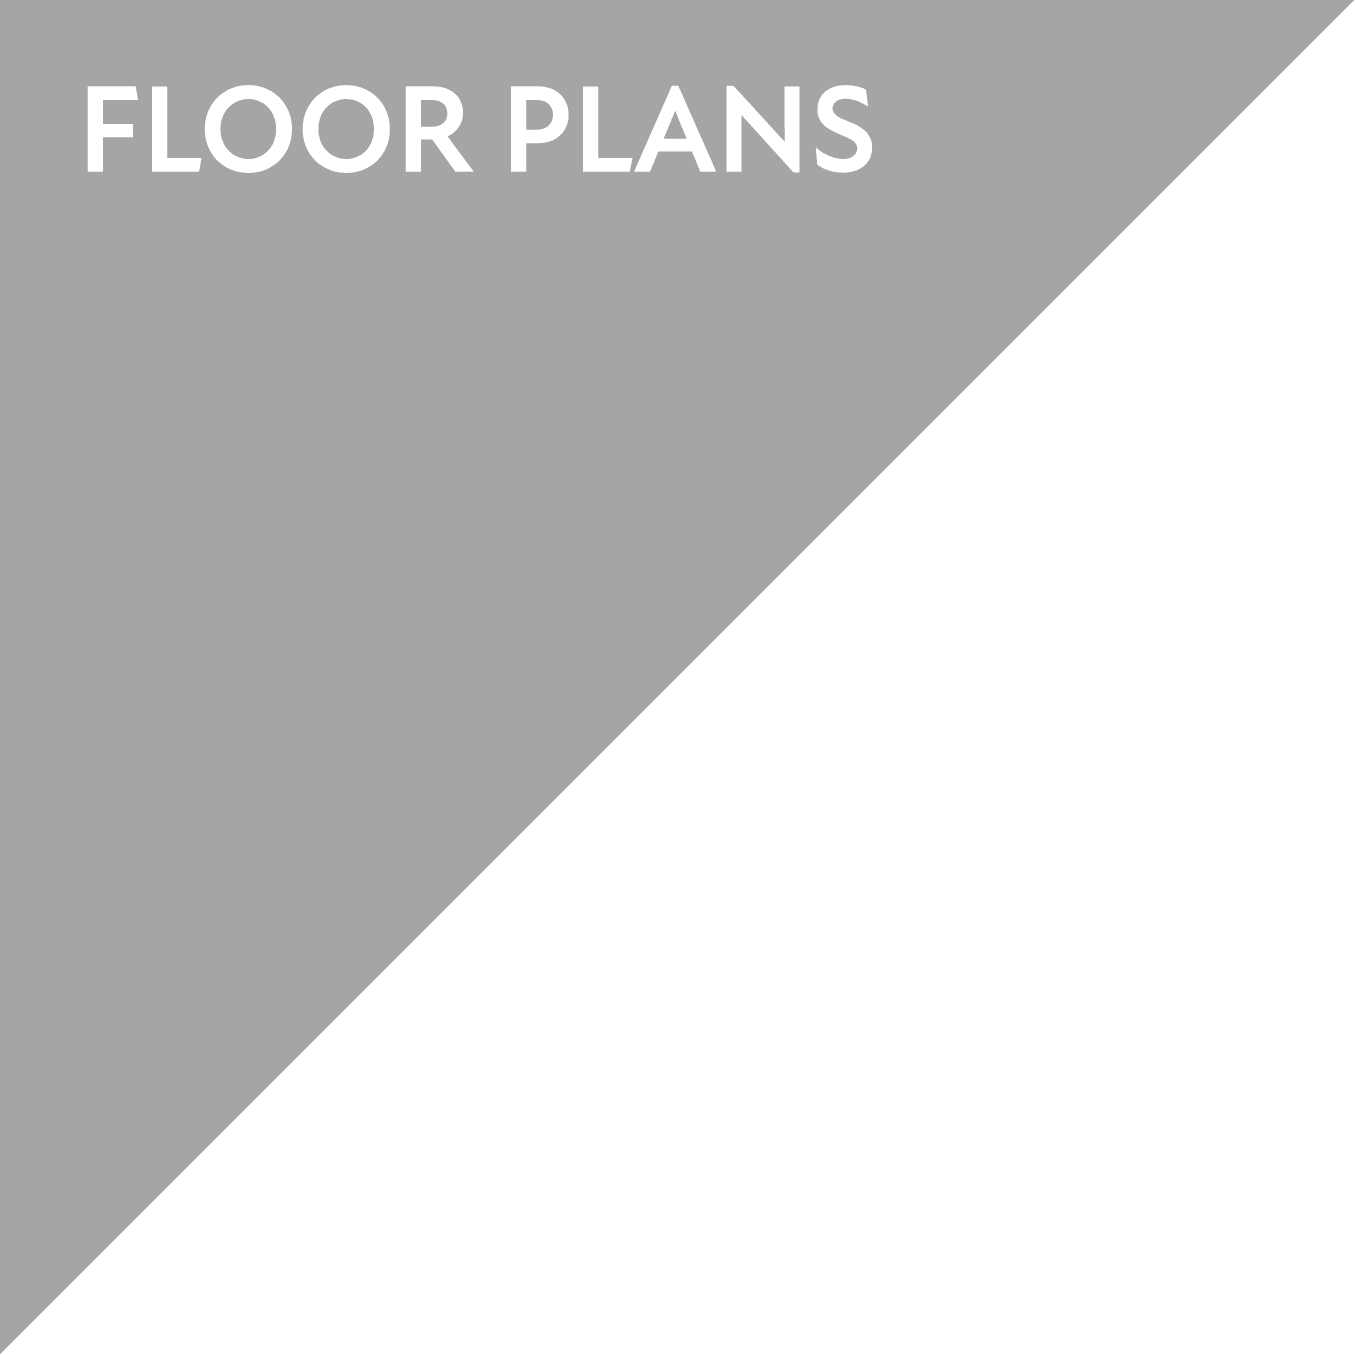 Link to floor plans page of Town Park Villas in Tampa, Florida